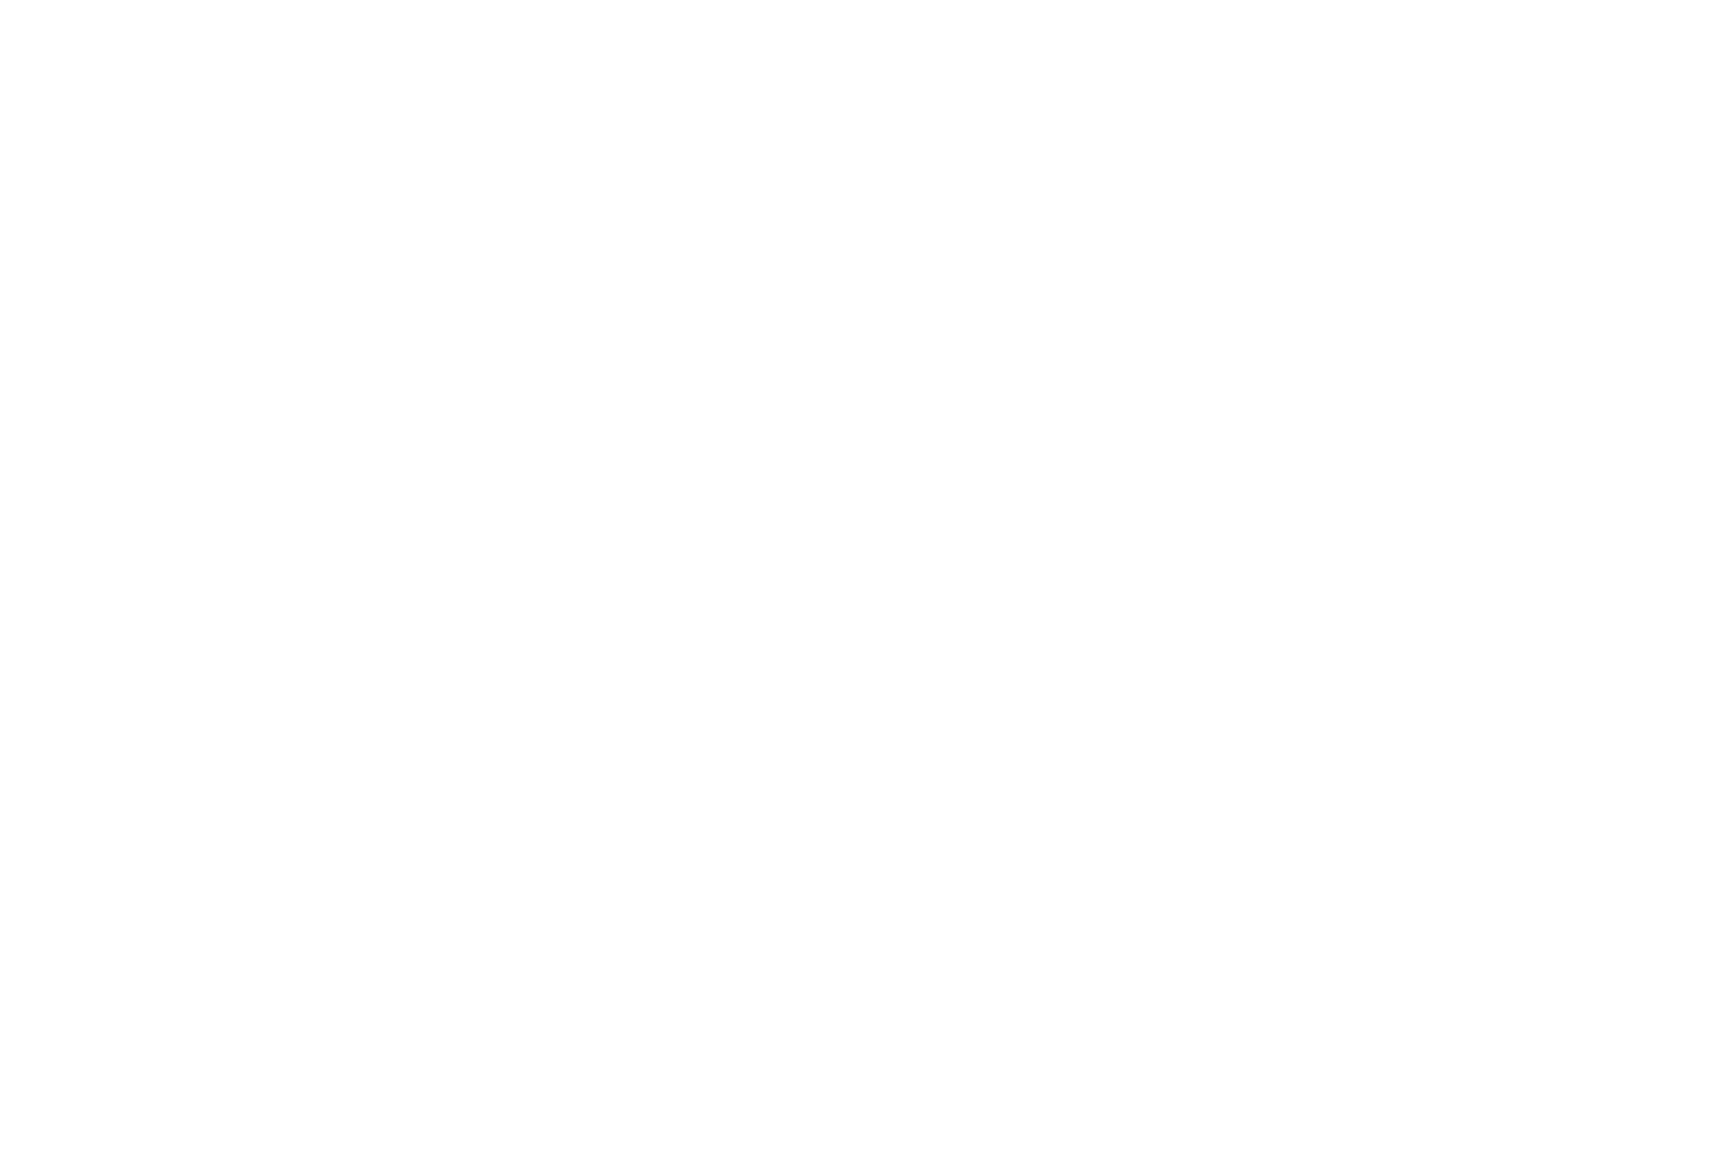 SEMI-FINALIST - CineStory Screenwriting Awards